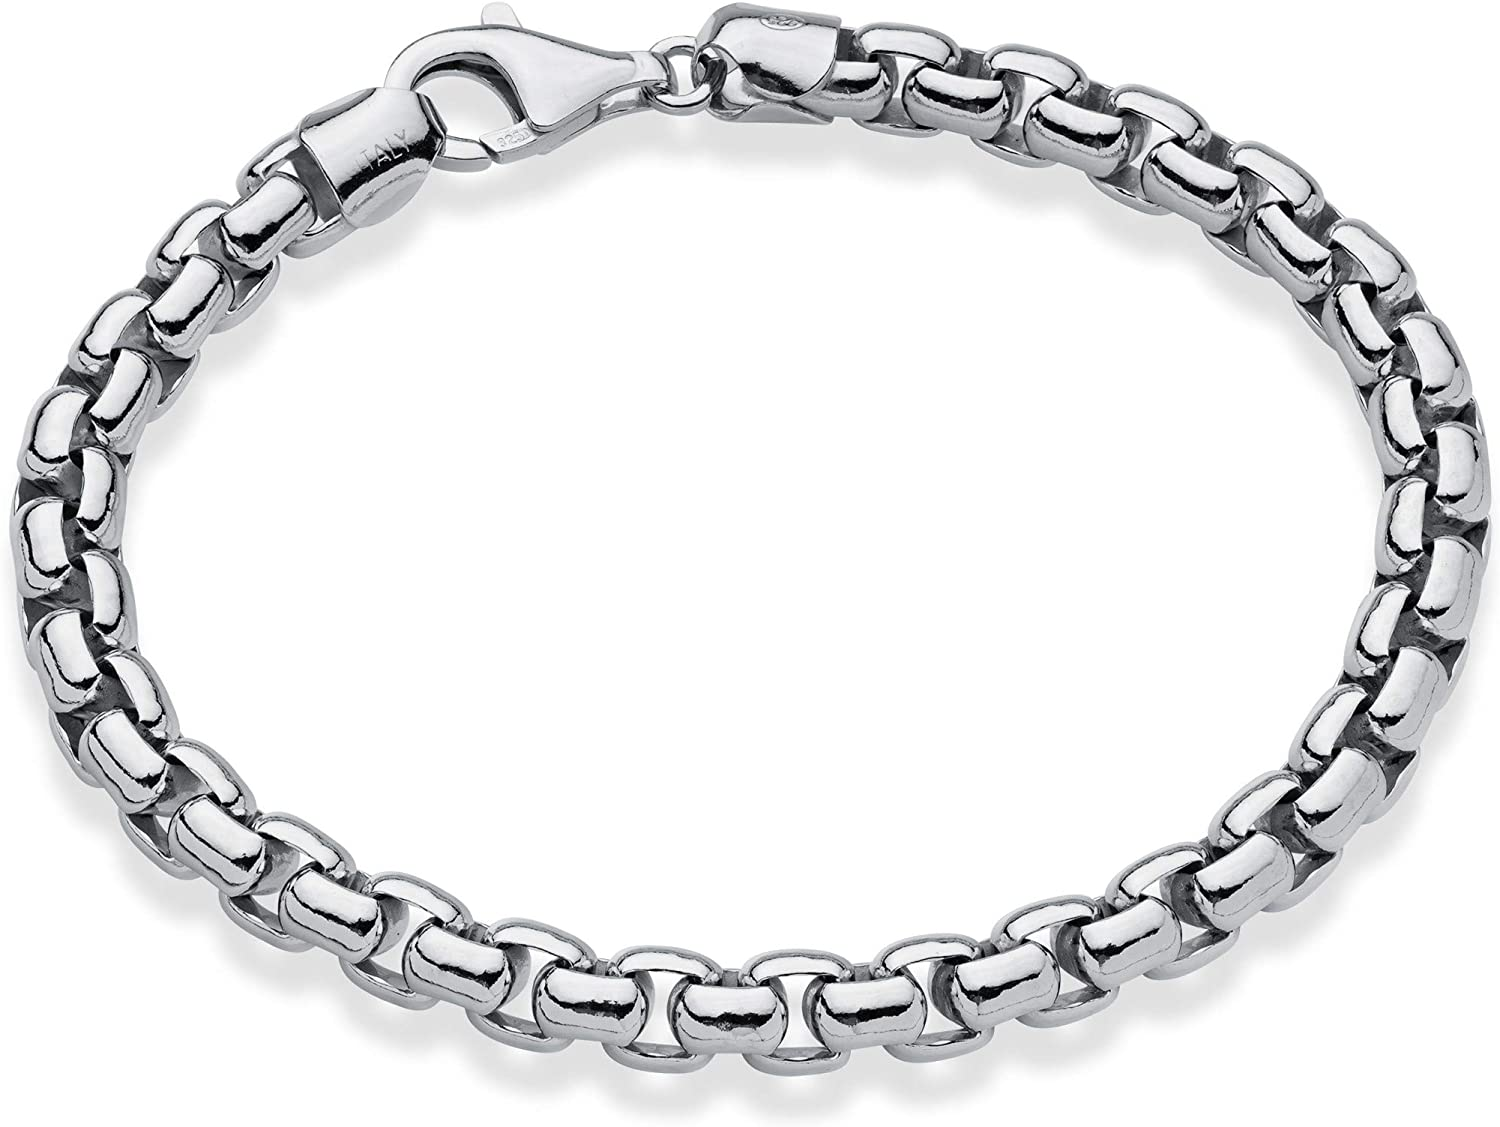 Miabella Solid 925 Sterling Silver Italian 6.5mm Square Rolo Link Round Box Chain Bracelet for Men 7.5, 8, 8.5, 9 Inch Made in Italy